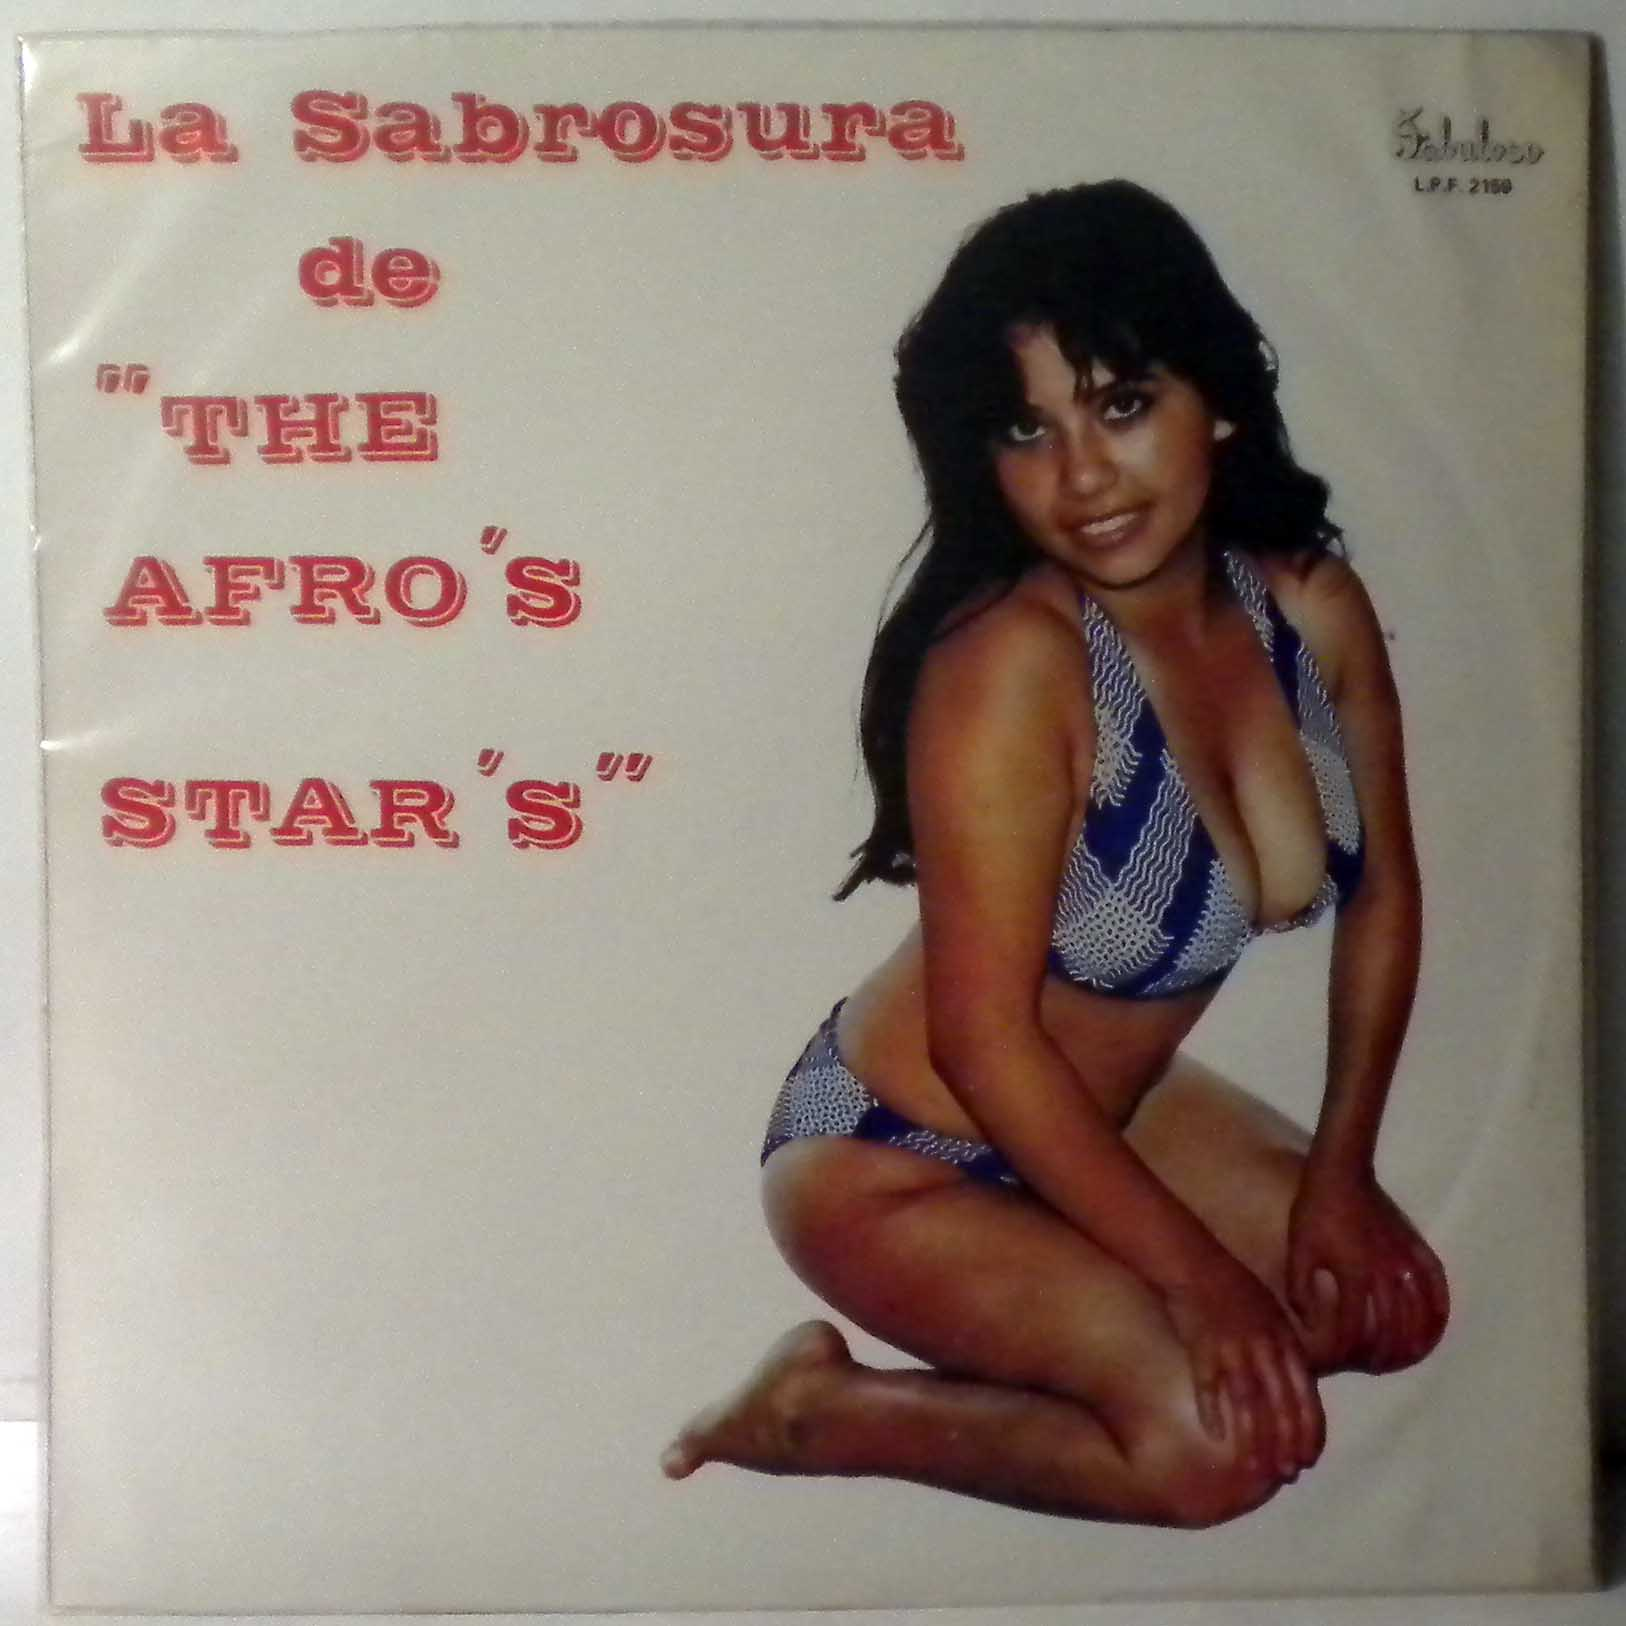 THE AFRO'S STAR'S - La sabrosura - LP